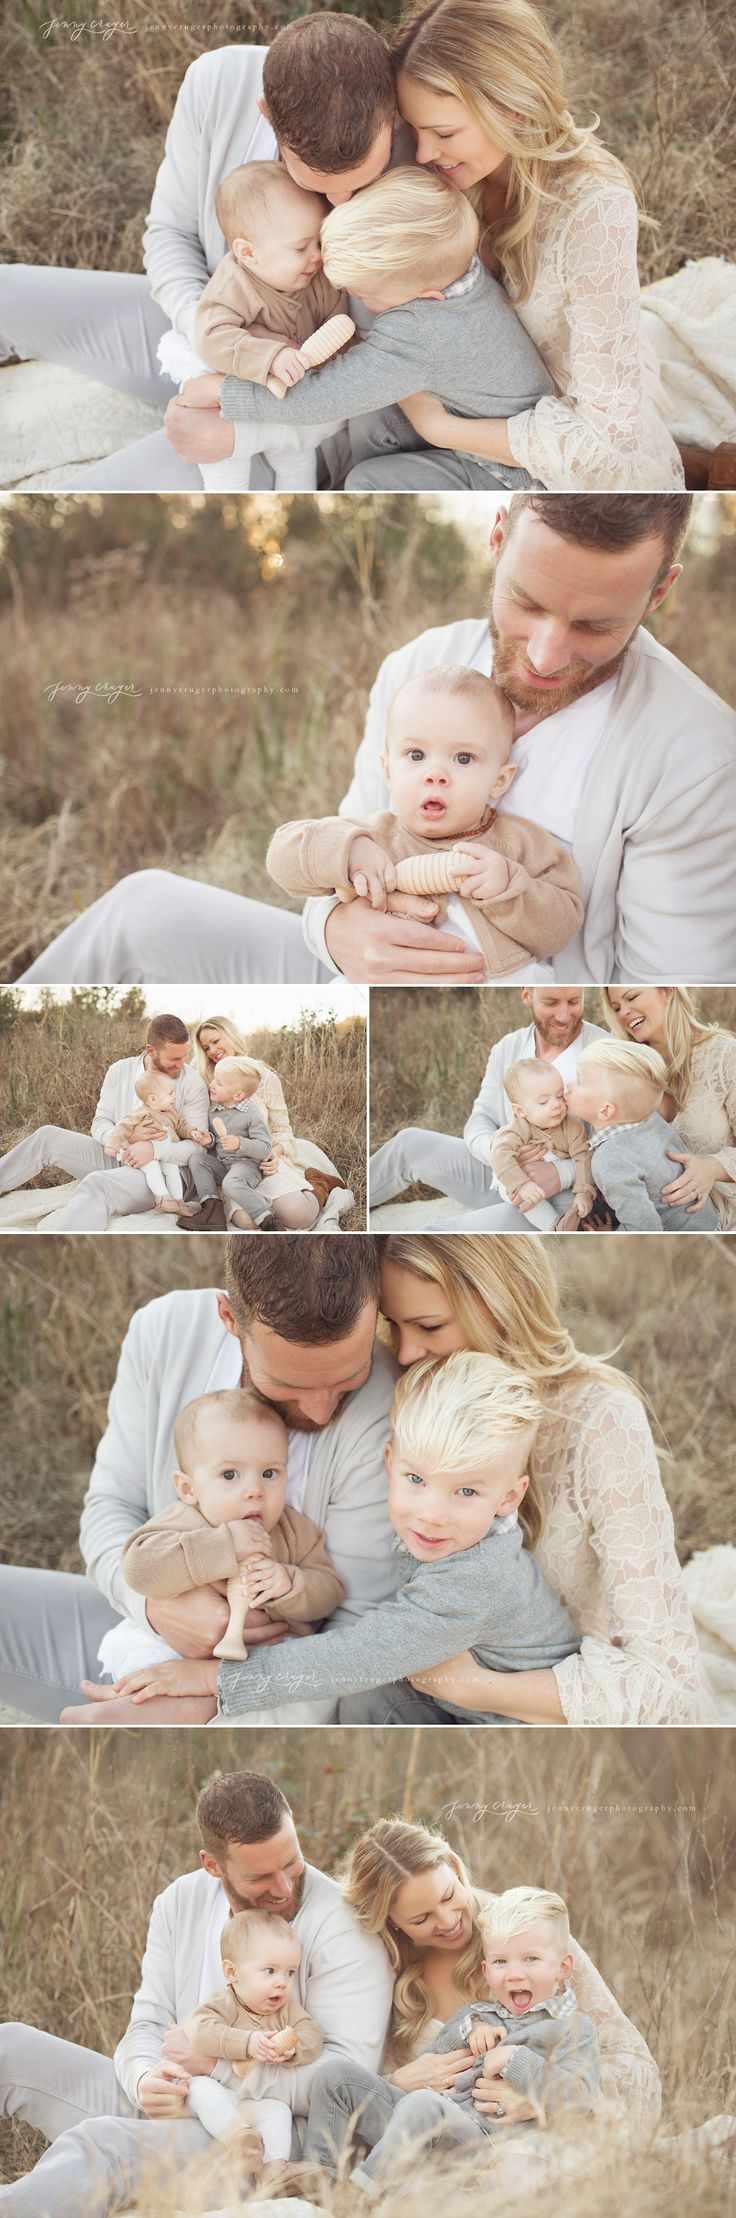 nashville family photographer | jenny cruger photography